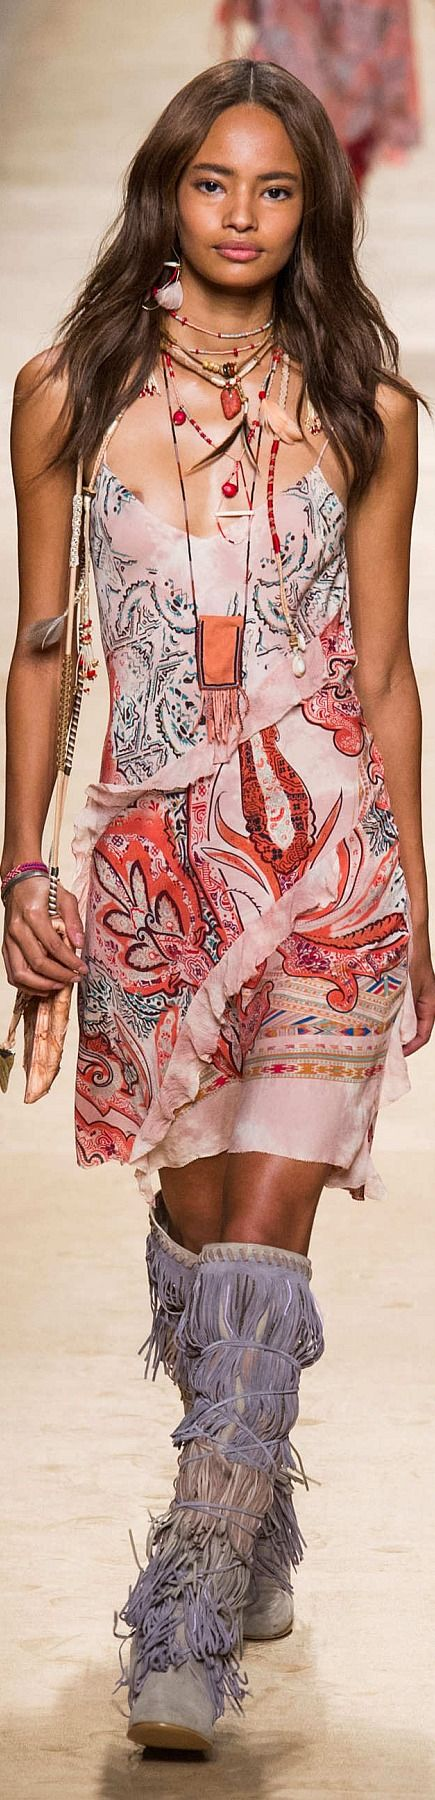 Bohemian Style| Serafini Amelia| Boho Styling-Etro Collection Spring 2015 | The House of Beccaria~